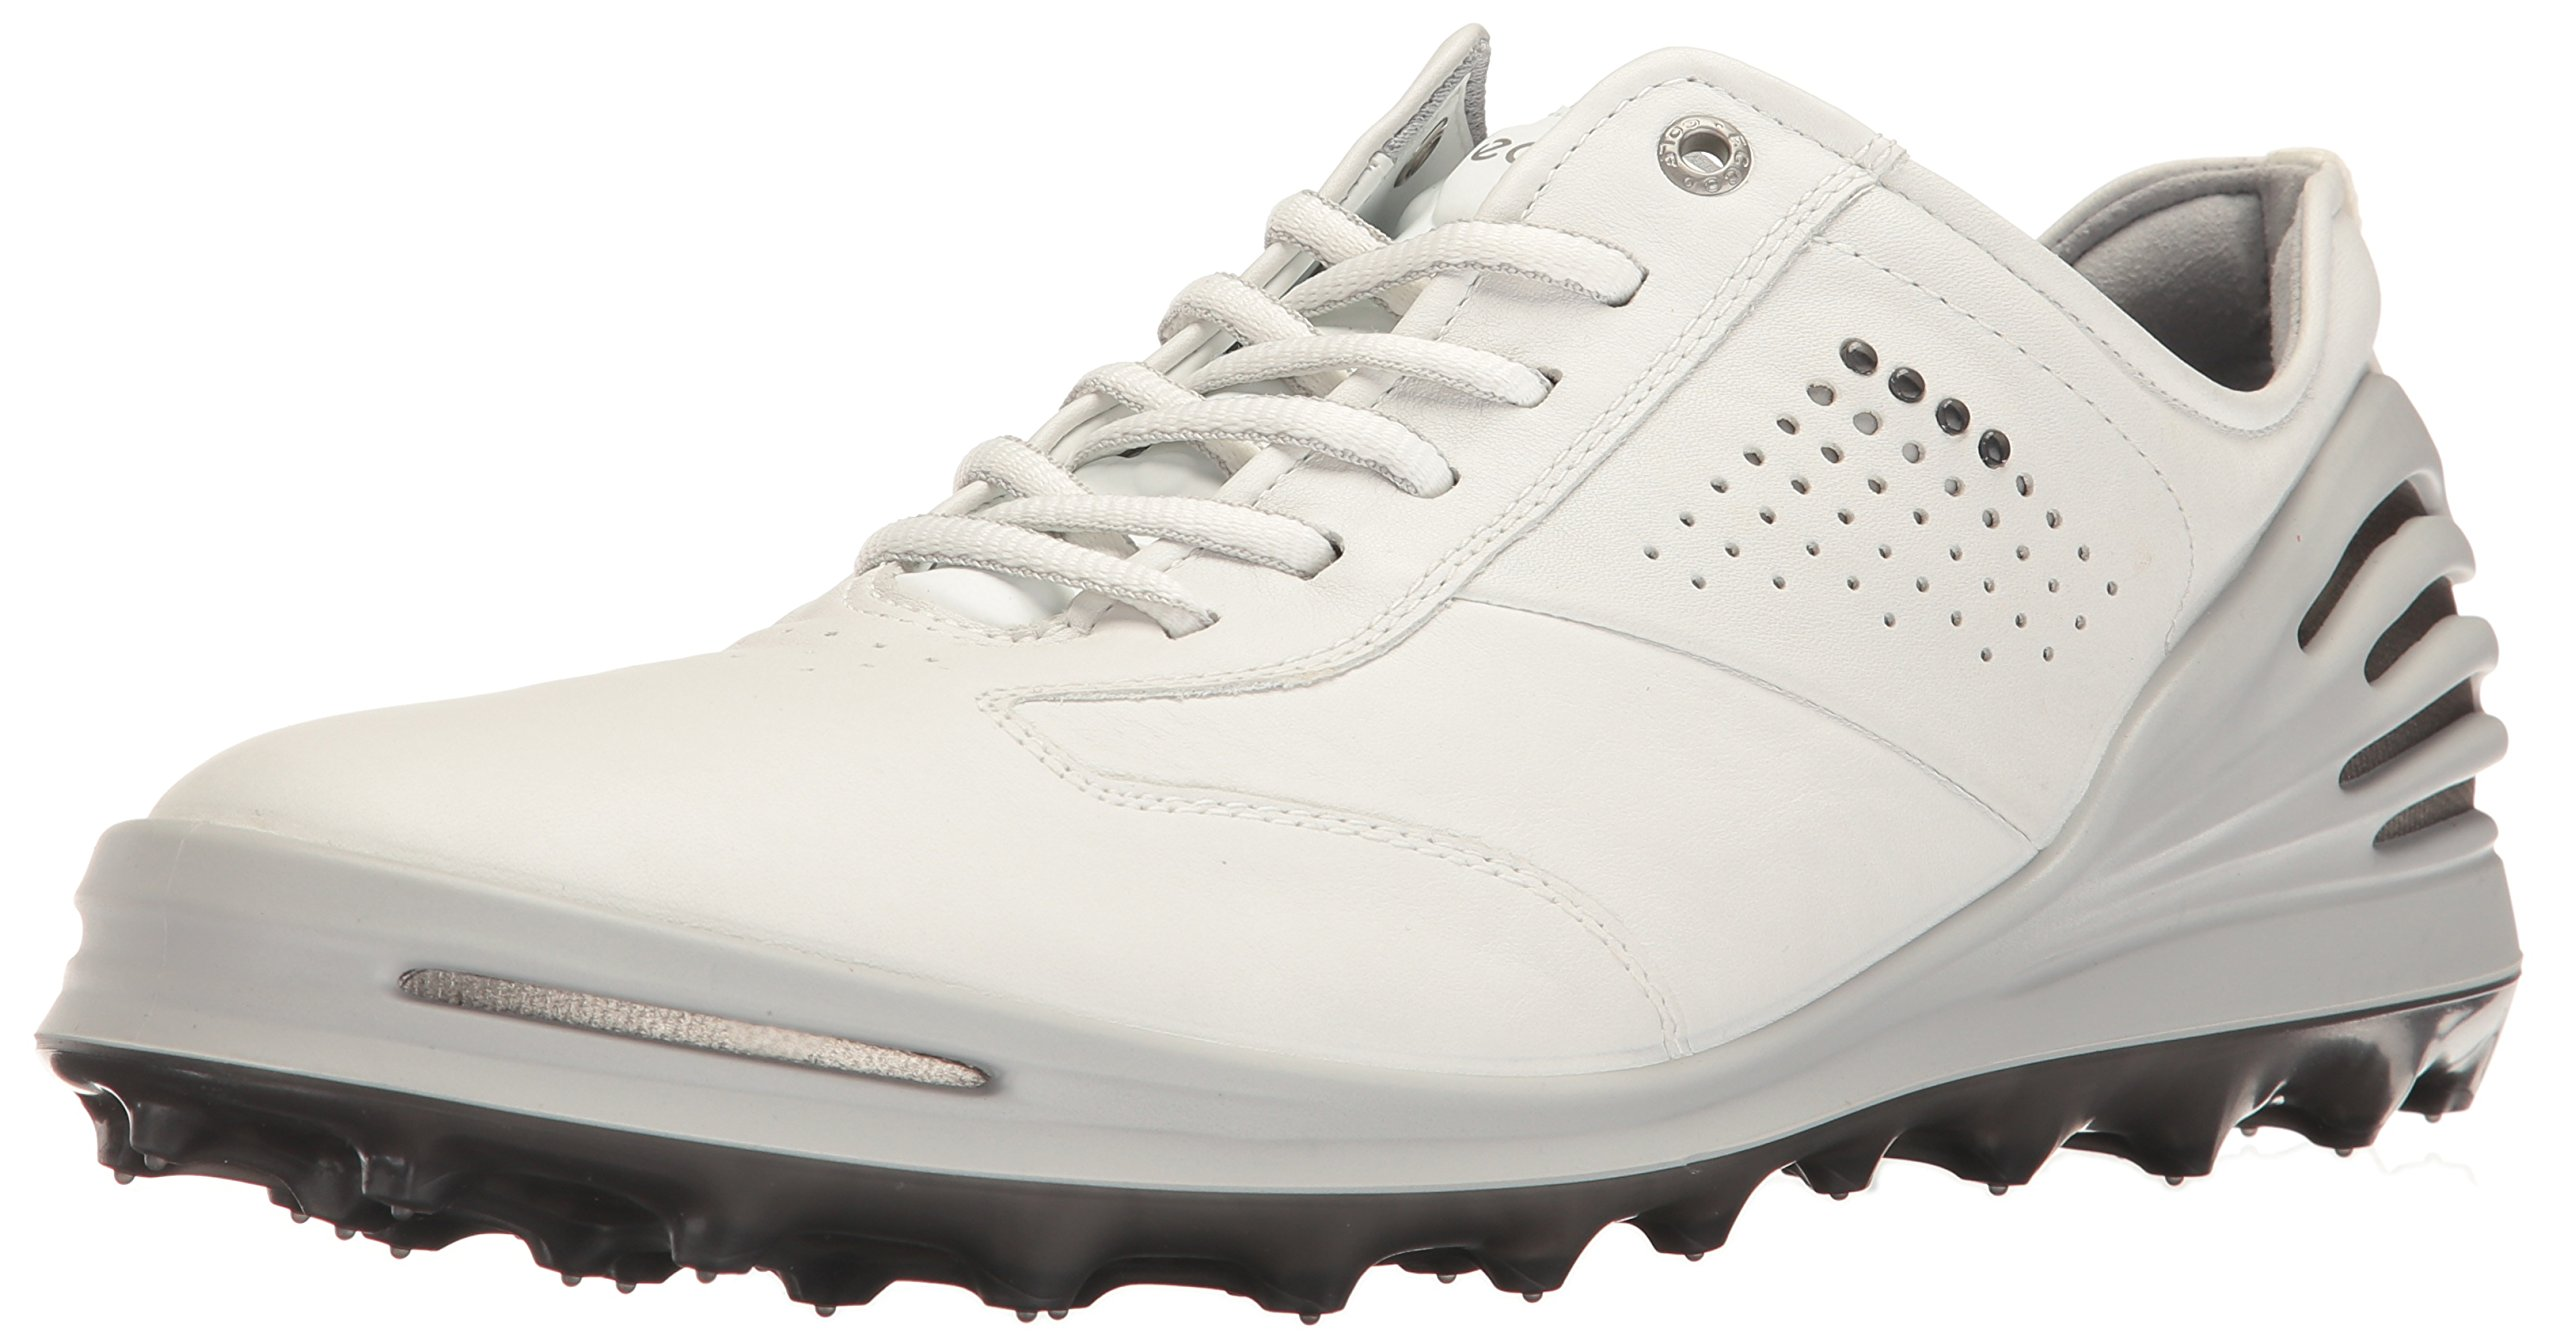 ECCO Men's Cage Pro Golf Shoe, White, 39 EU/5-5.5 M US by ECCO